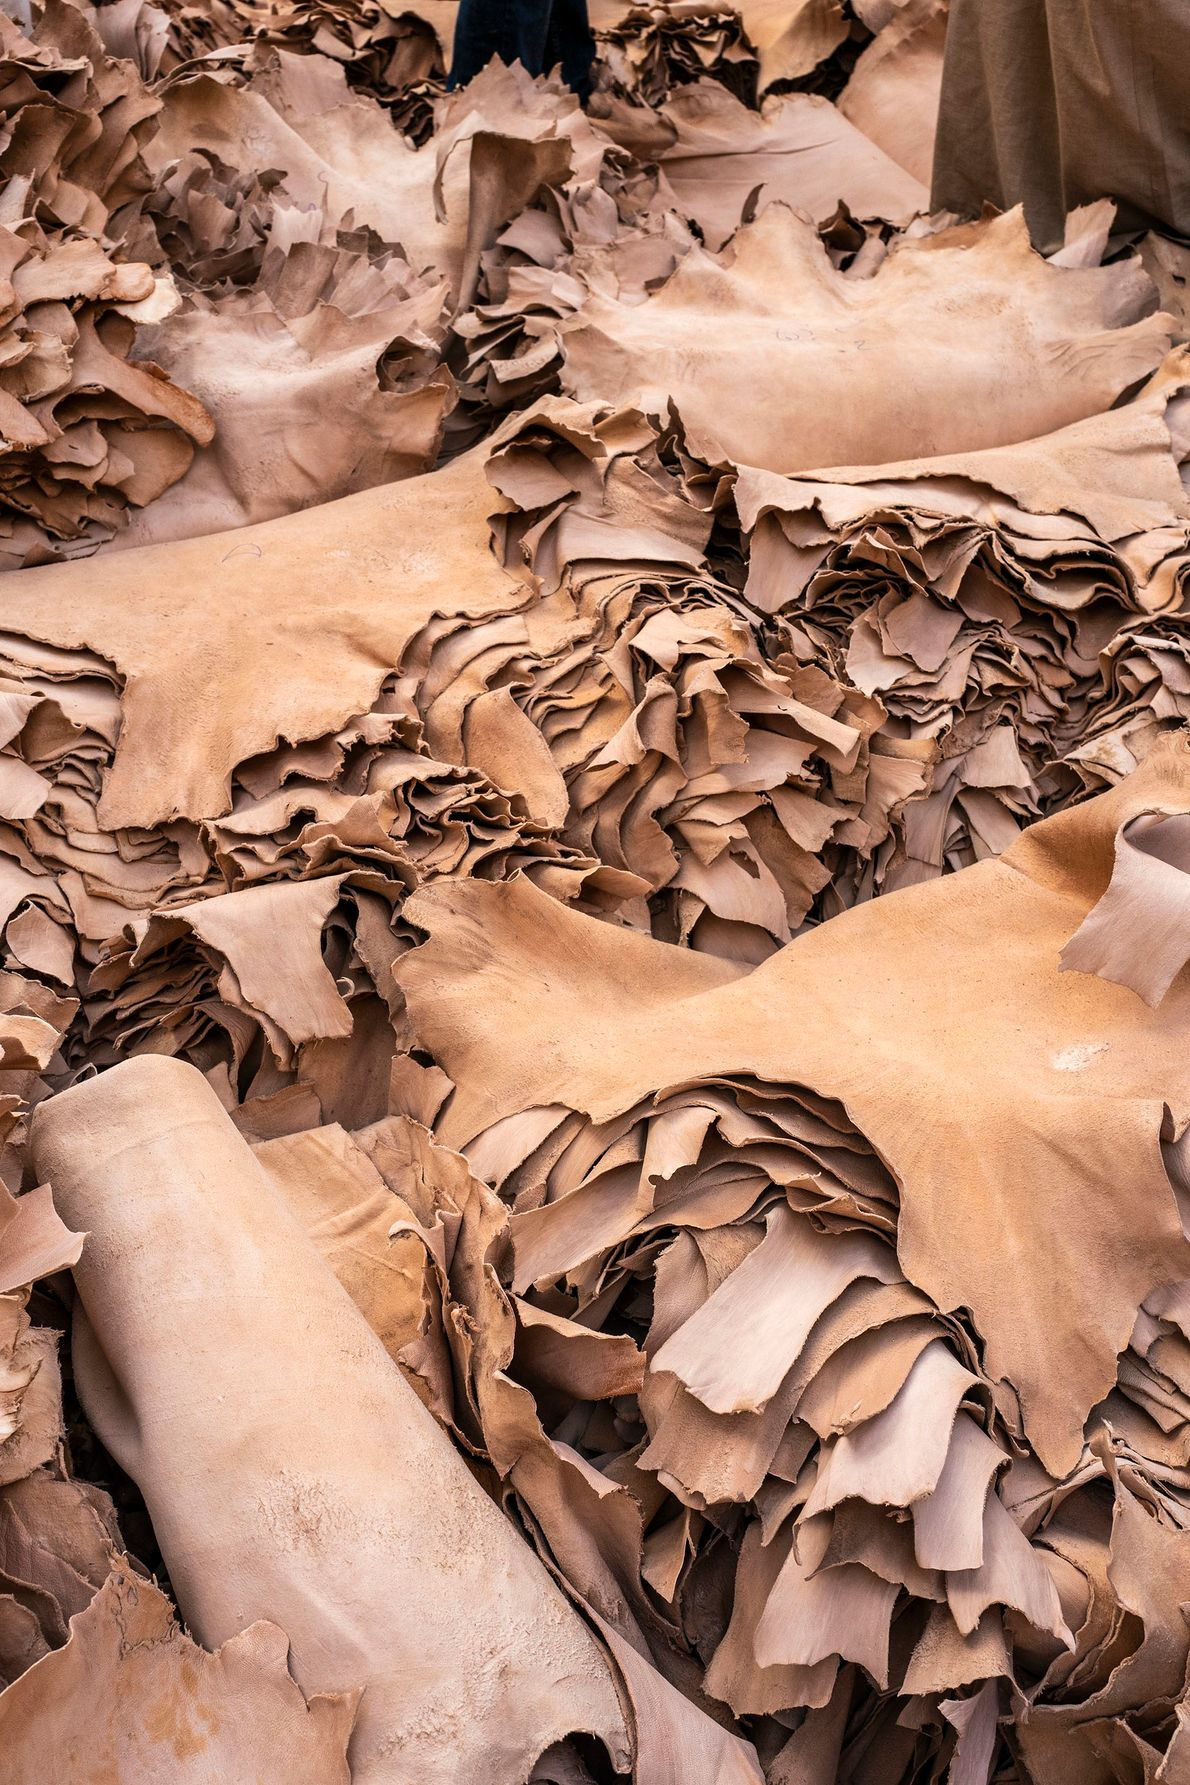 Tanned hides ready to be sold to local dyers and artisans. Negotiations take place in the ...